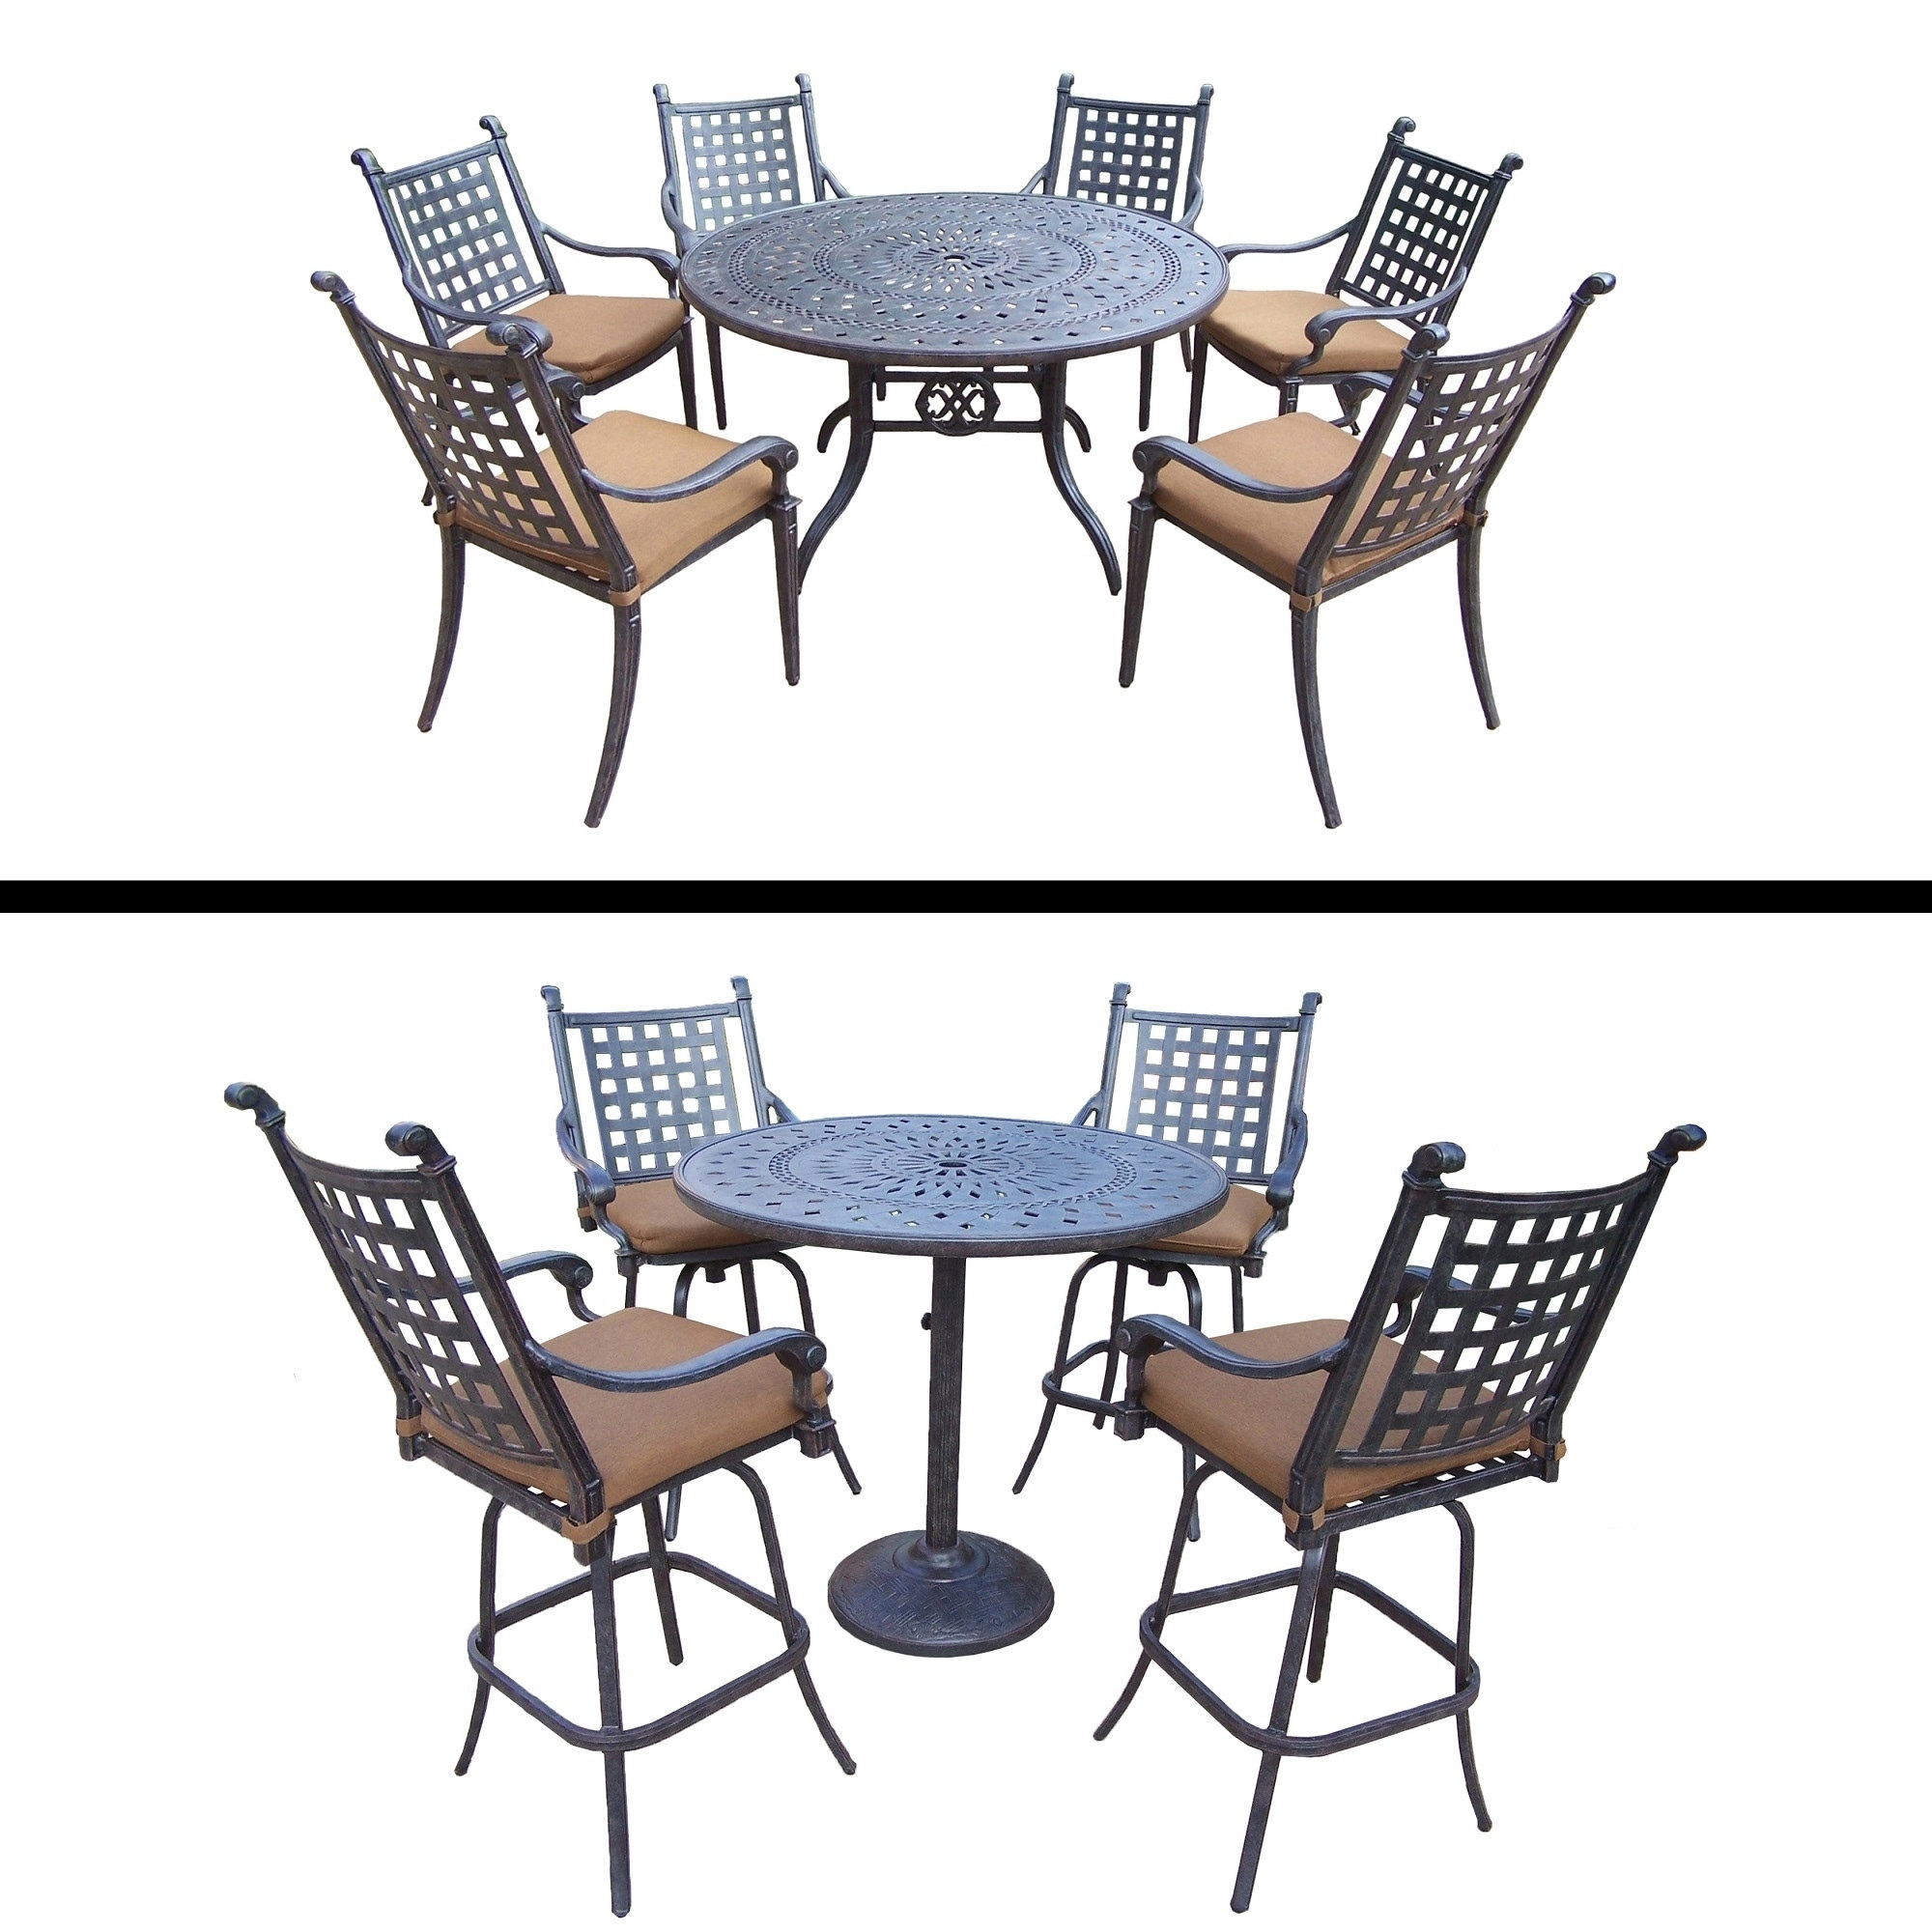 Oakland Living 5 Pc Bar Set and 7 Pc Dining Room Set and Sunbrella Cushions by Overstock